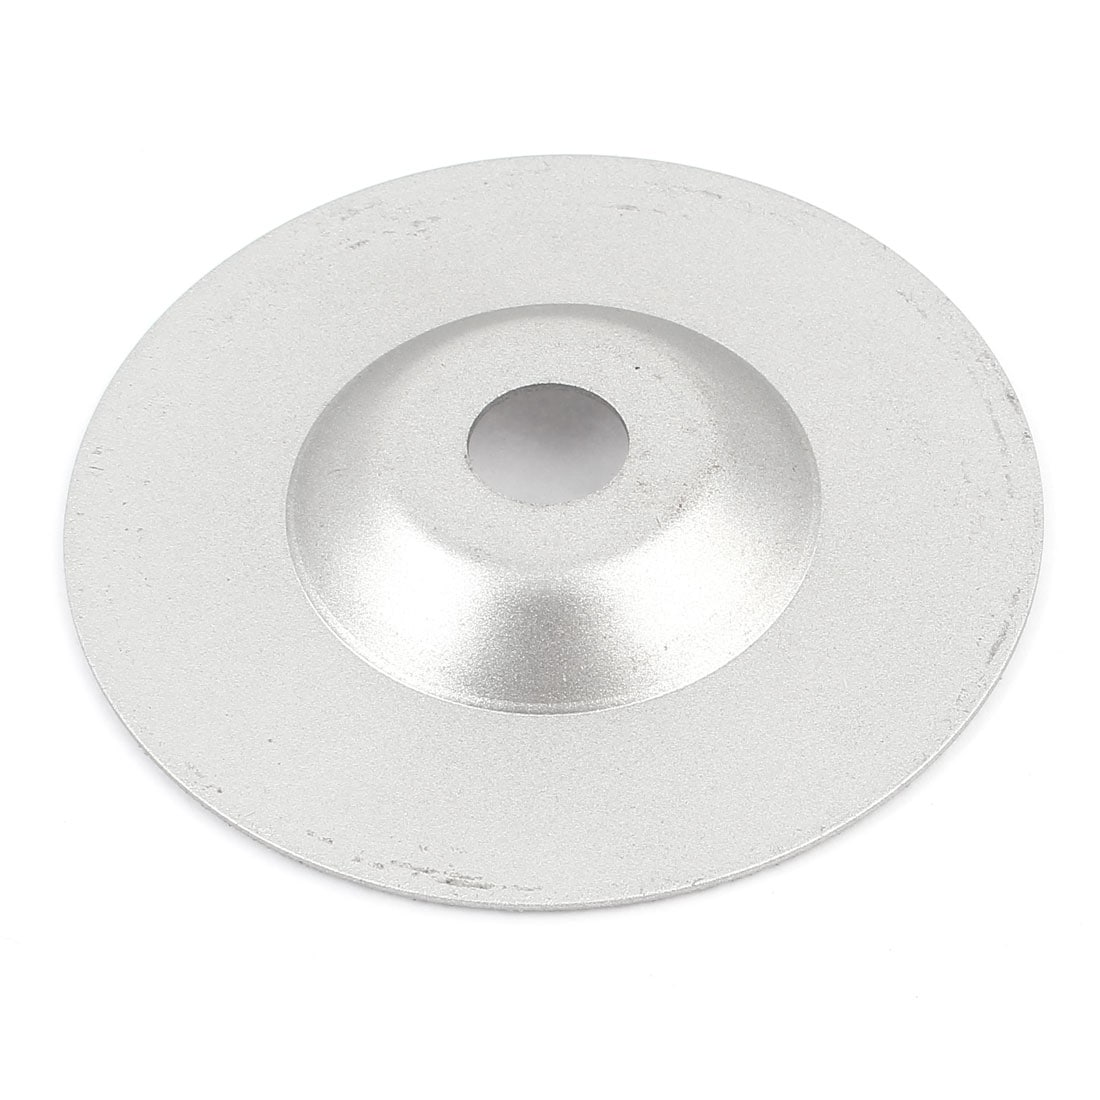 Unique Bargains Marble Grinding Tool Diamond Coated Cutting Wheel Disc 100mm x 16mm